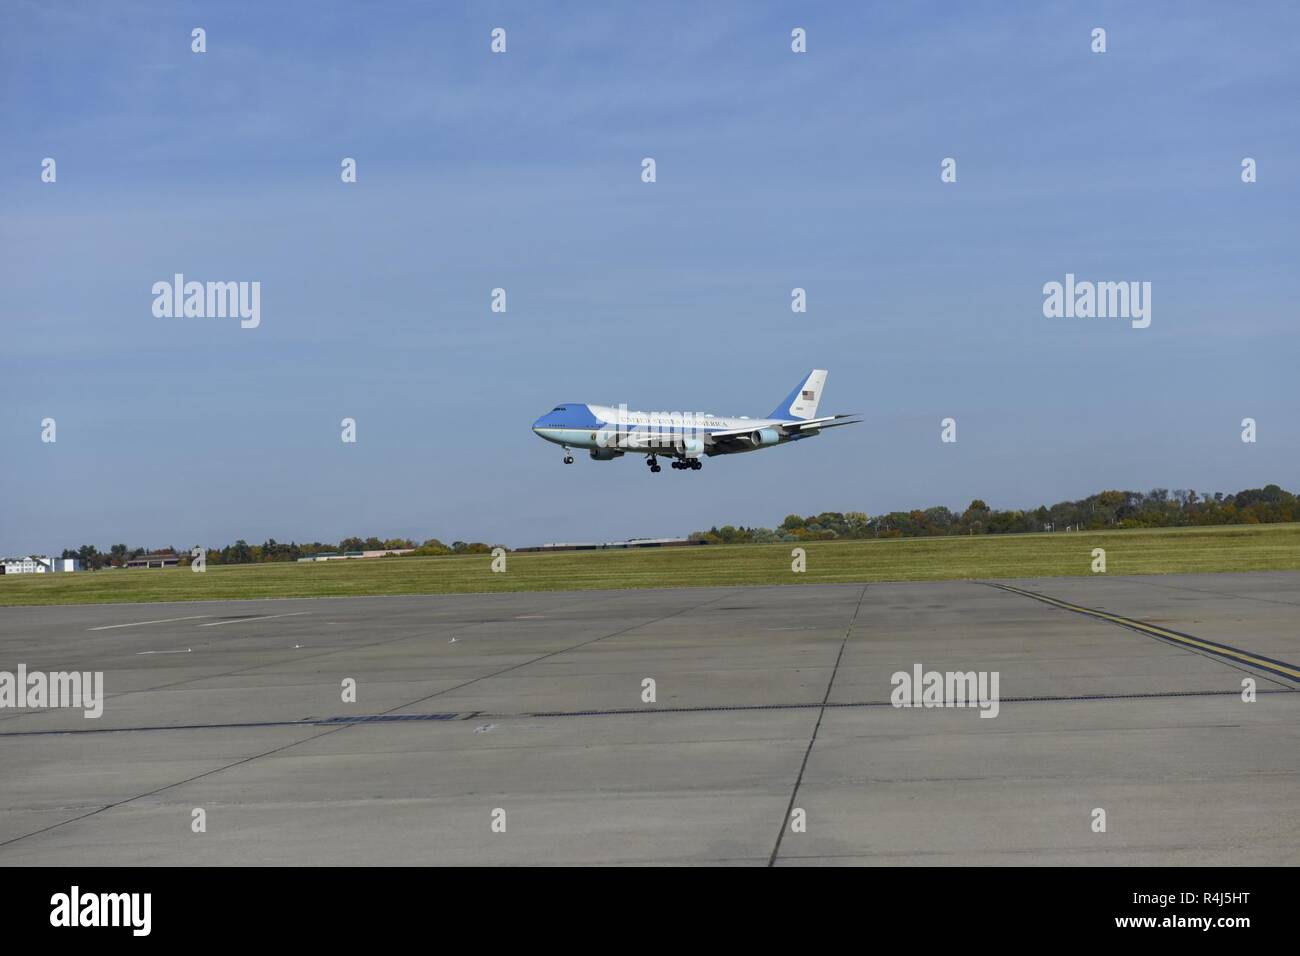 Air Force One approaches the runway at Pittsburgh International Airport, Oct. 30, 2018, beginning President Donald Trump's visit to Pittsburgh after a deadly anti-Semitic attack occurred in a local Pittsburgh suburb, Oct. 27, 2018. President Trump was joined by First Lady Melania Trump, his daughter Ivanka and son-in-law Jared Kushner. Stock Photo